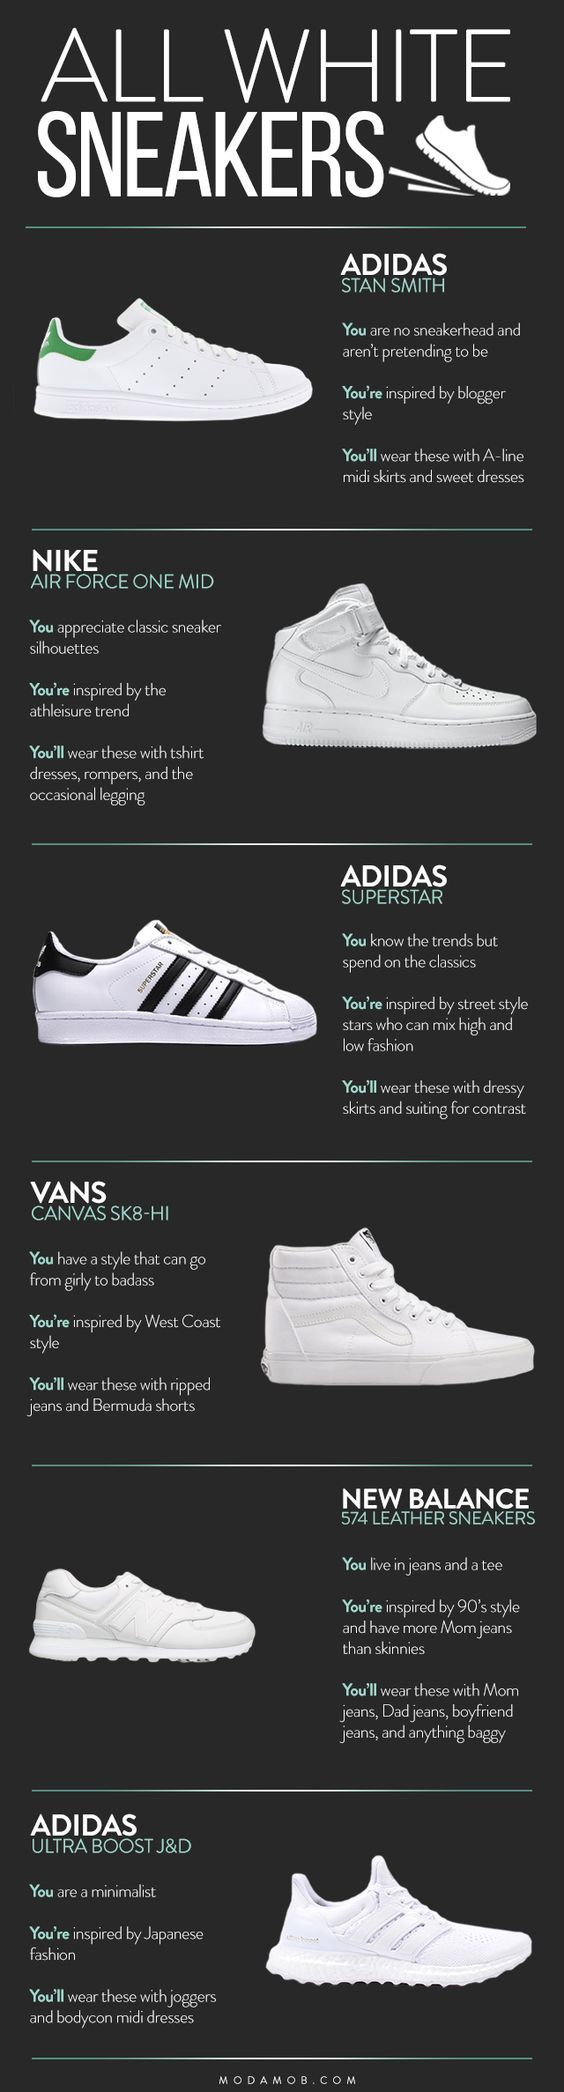 c545a3916bf33 Which All White Sneaker Matches Your Personal Style | Adidas Stan Smith,  Nike Airforce One